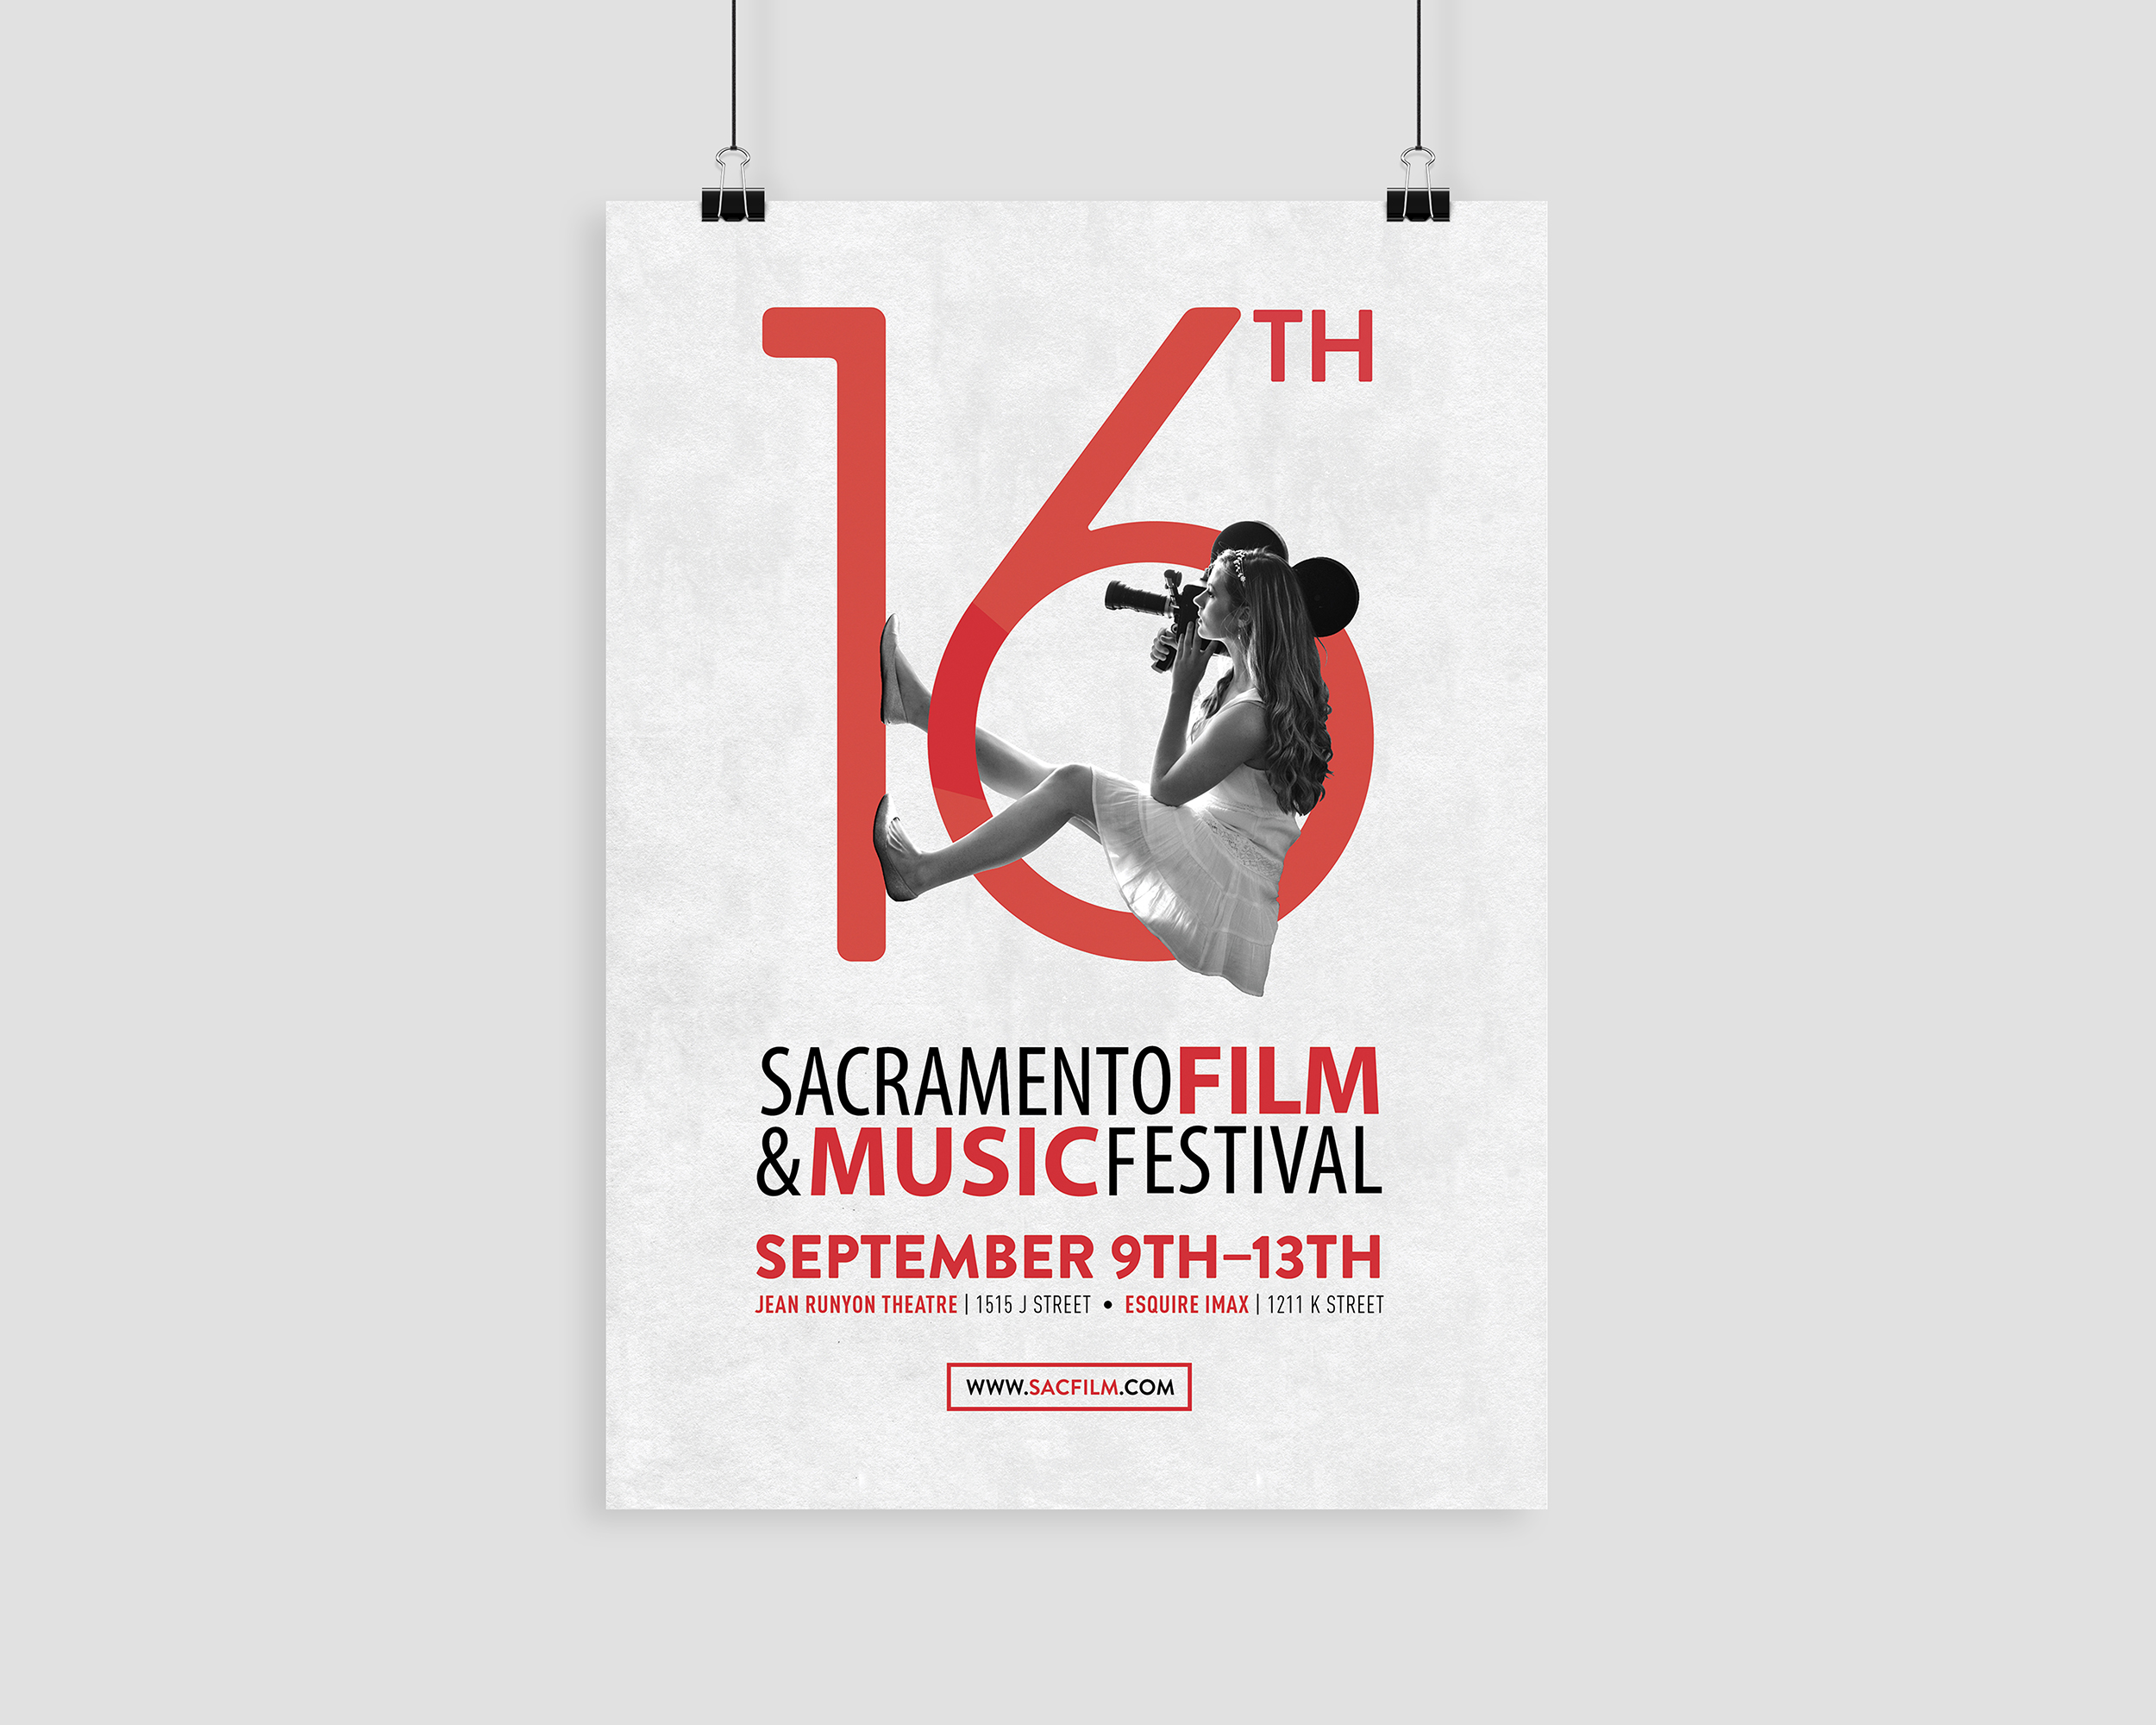 16th Annual Sacramento Film & Music Festival